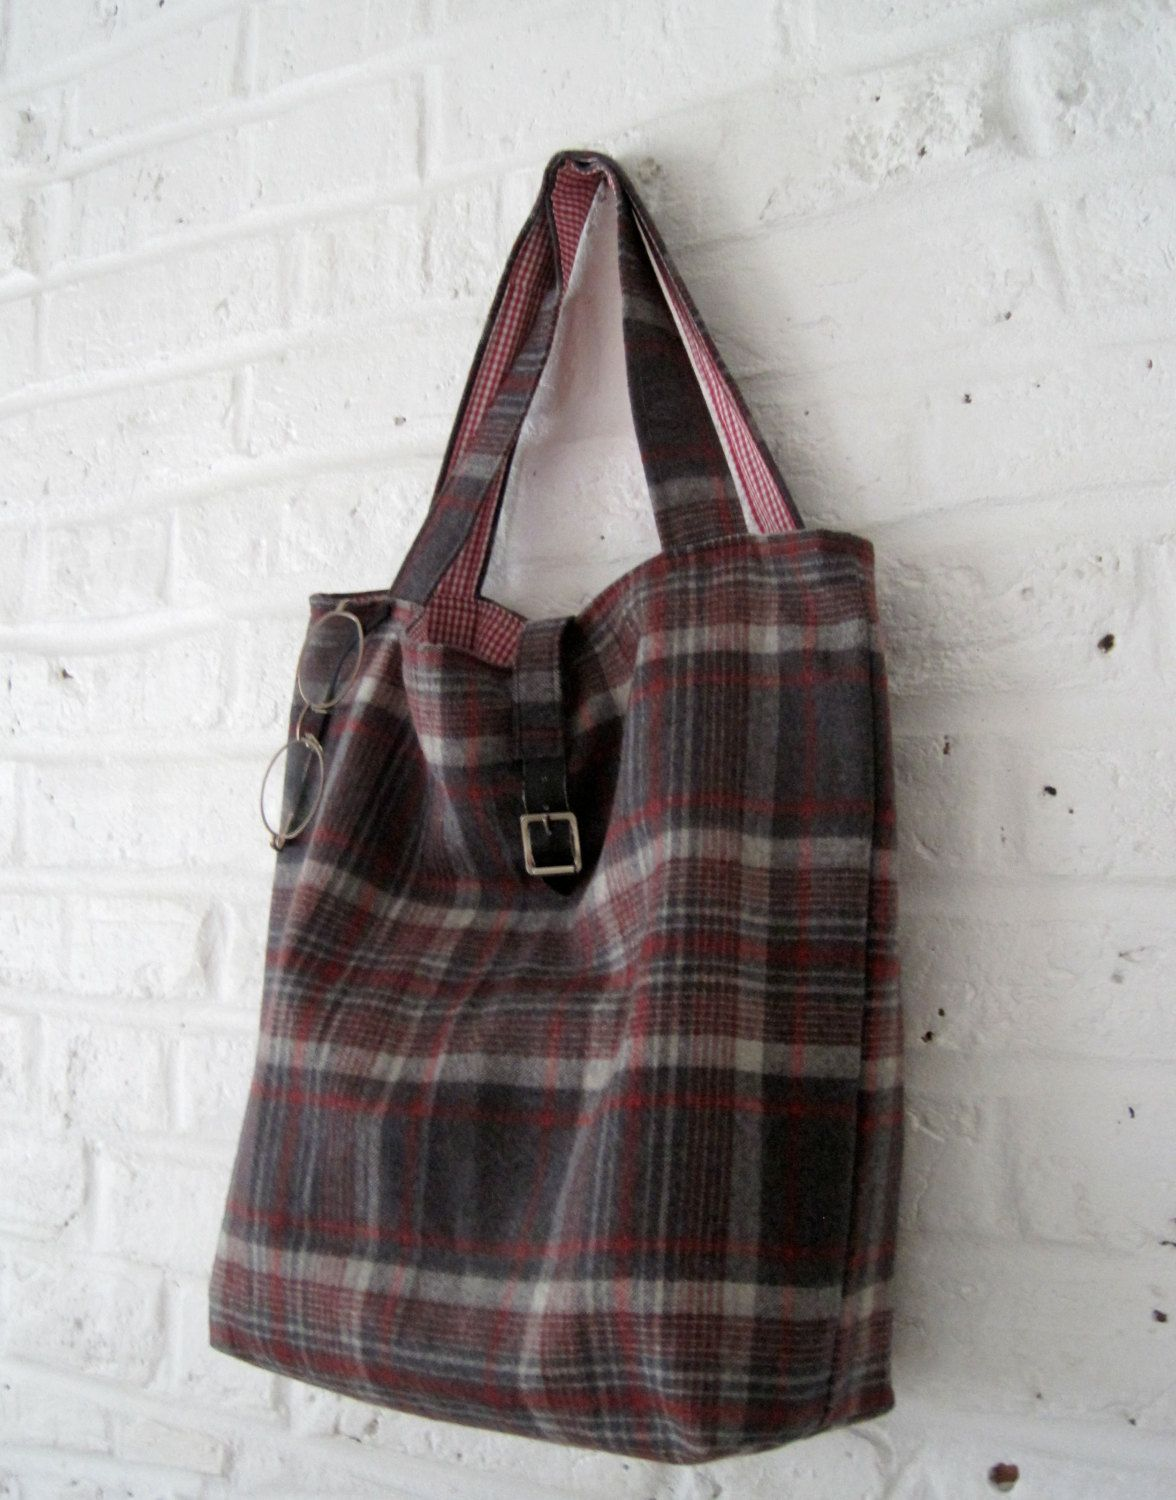 Handmade Recycled Red and Grey Wool Bag by MadeinW6 on Etsy